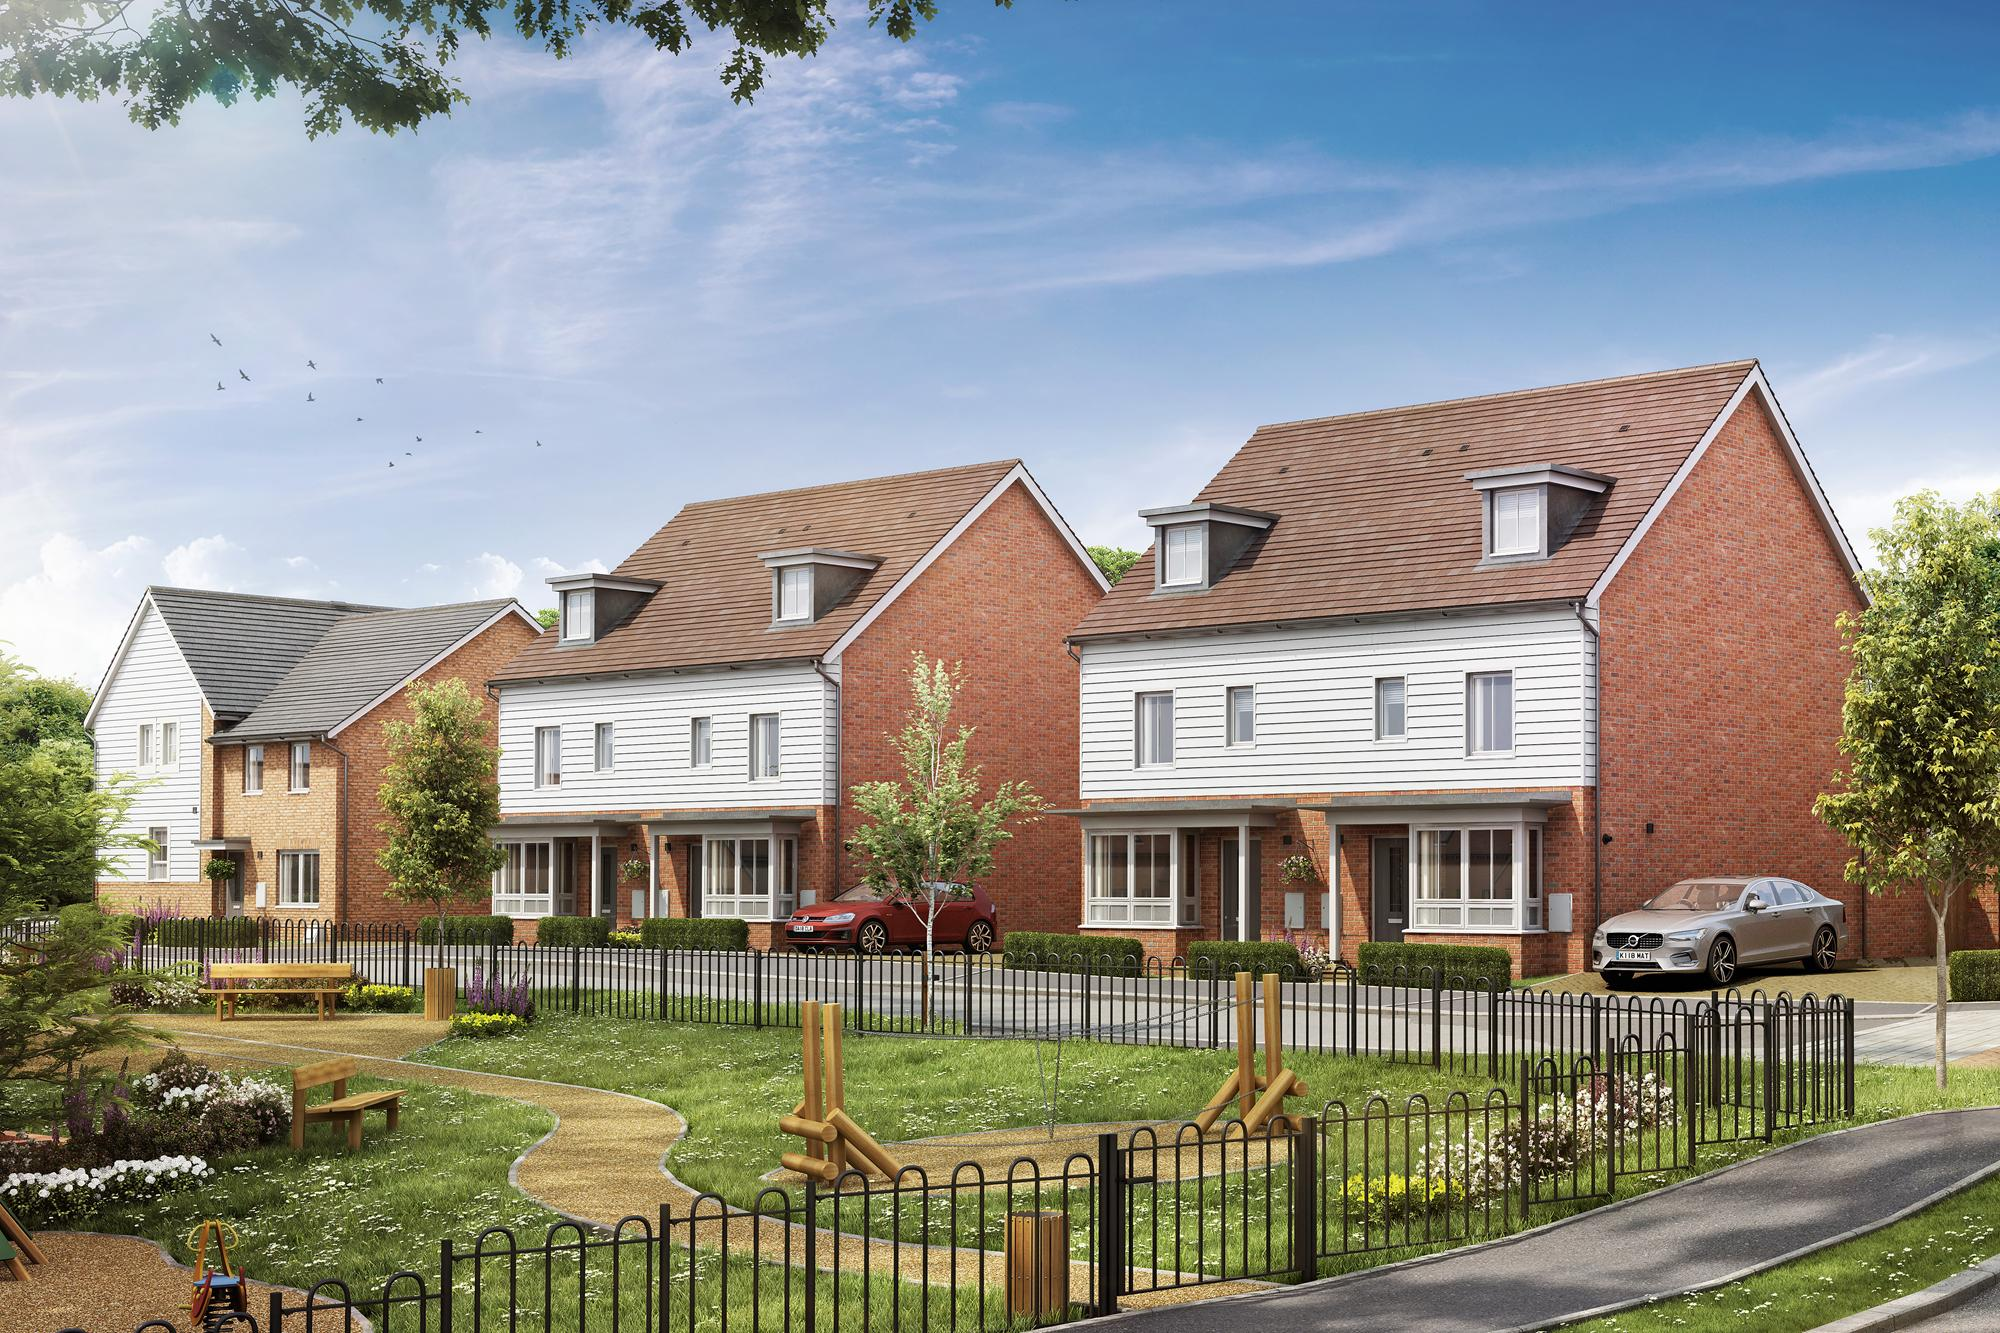 Wychwood Park-Barratt Homes